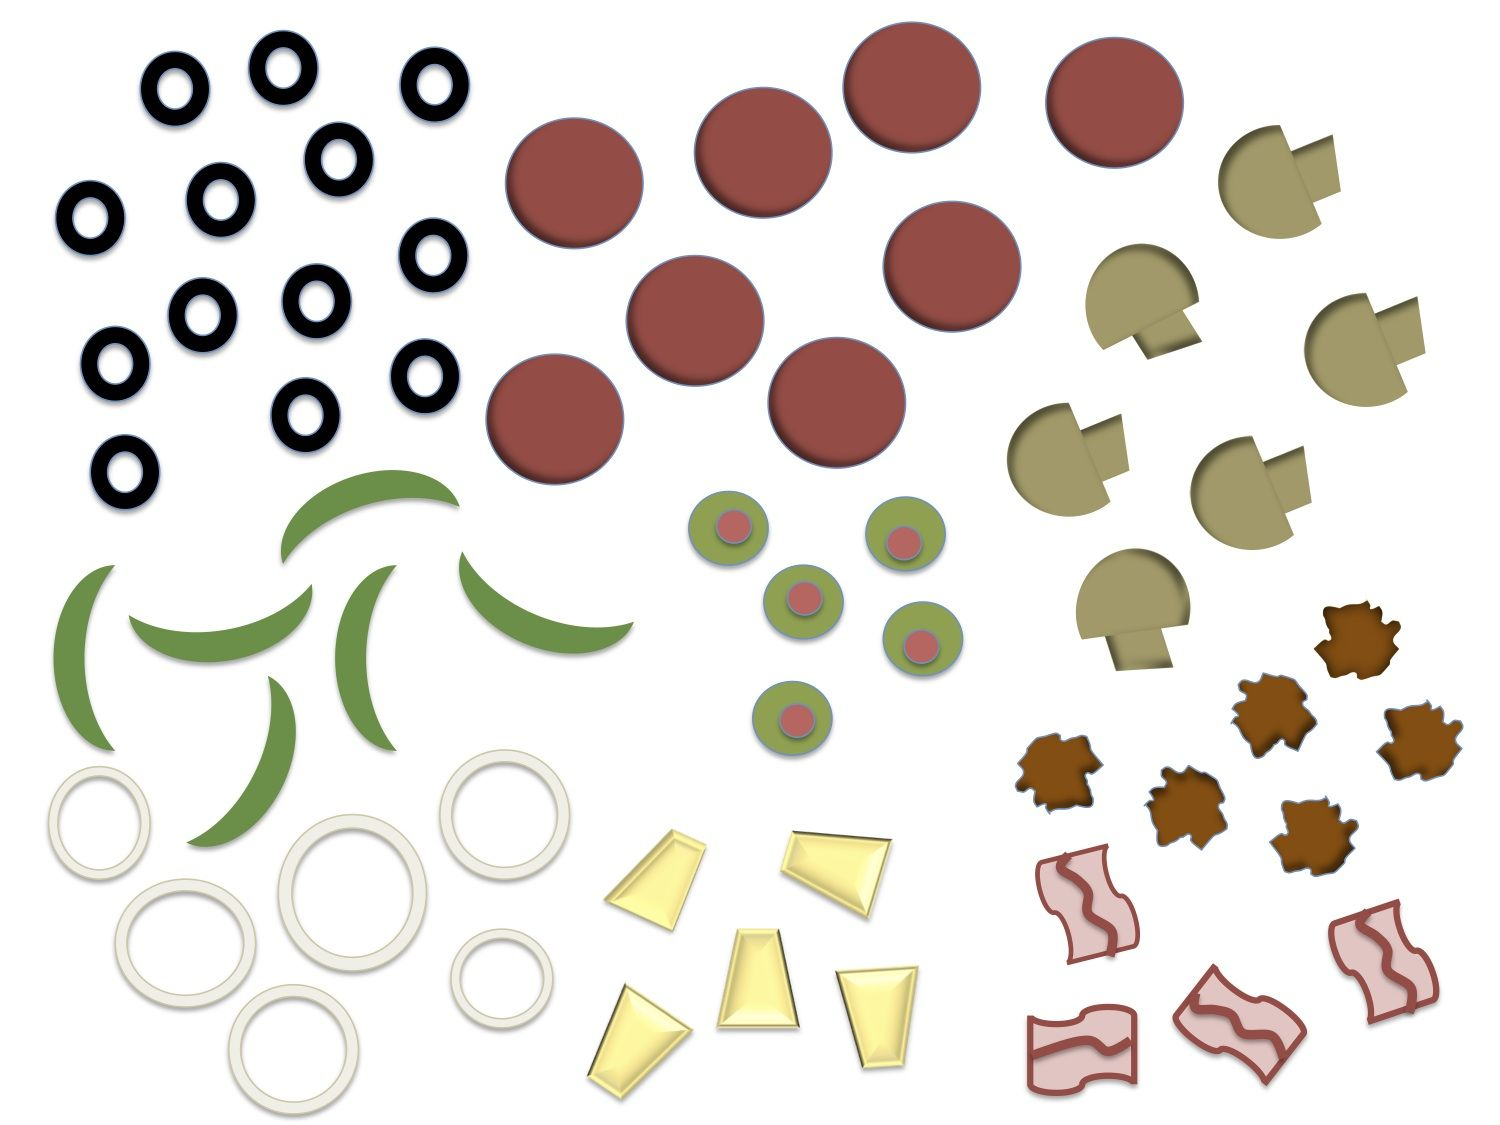 medium resolution of printable pizza toppings clipart free clipart